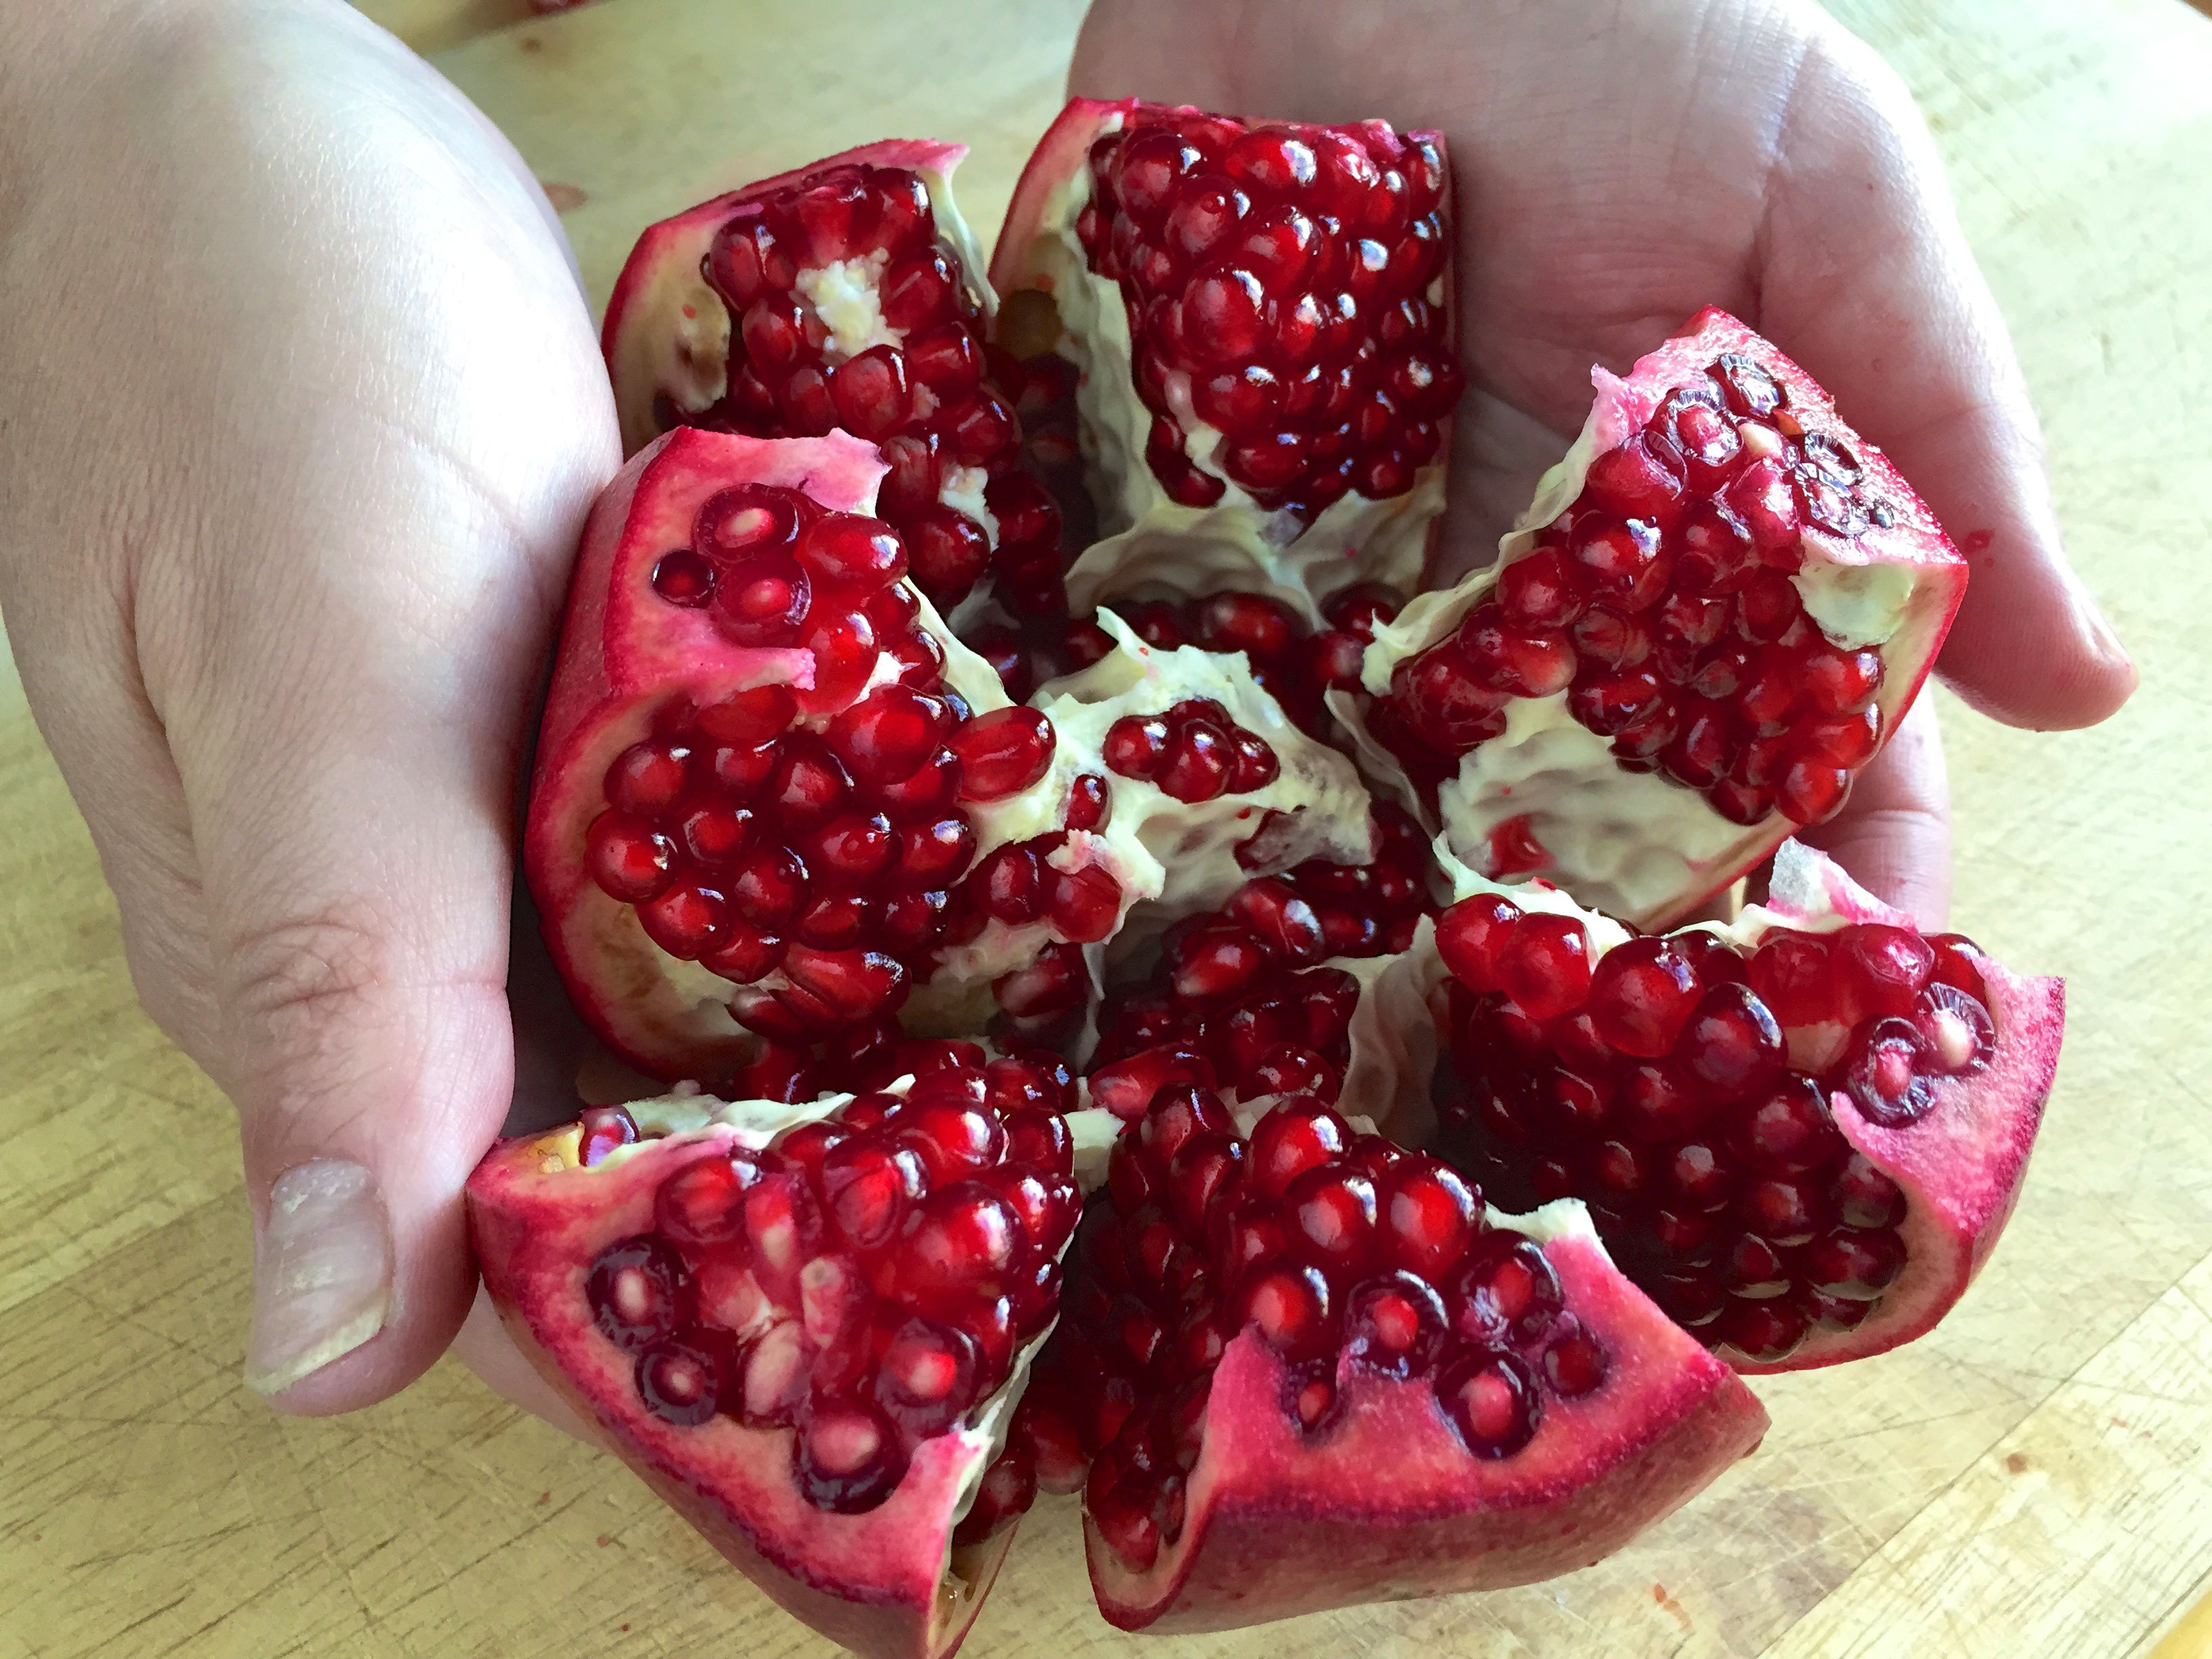 Opening up the Pomegranate